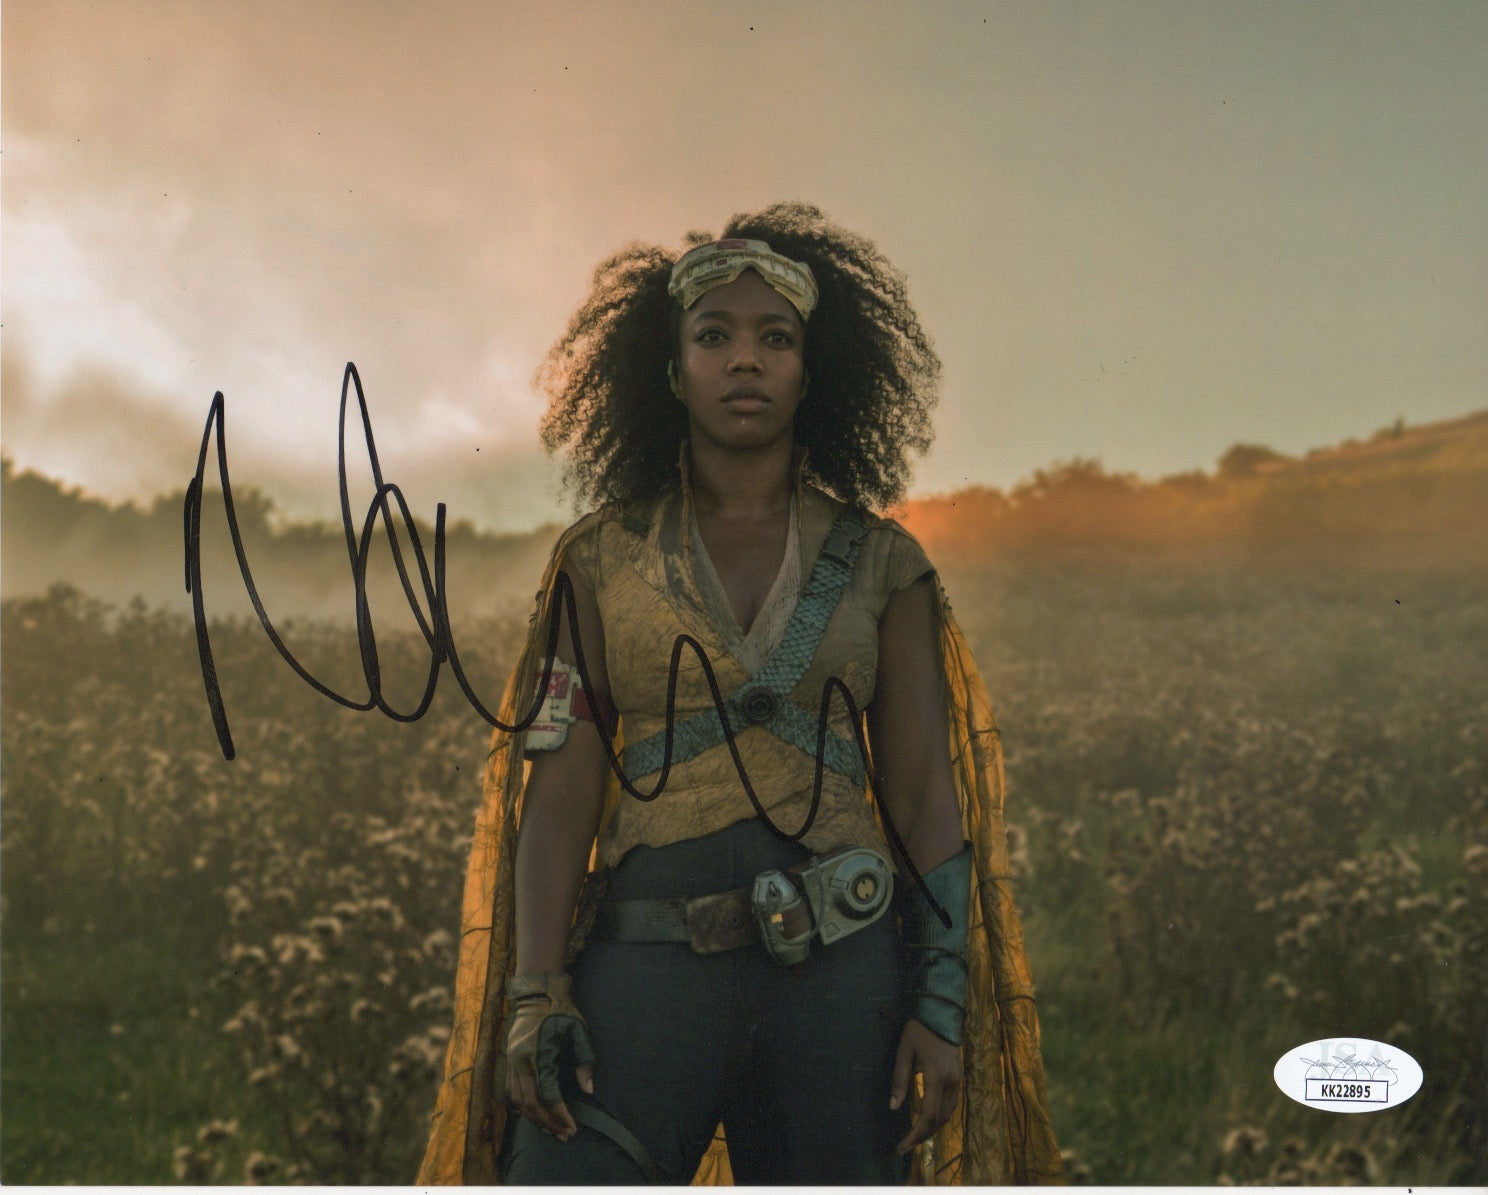 Naomi Ackie Jannah  Star Wars Signed Autograph JSA #5